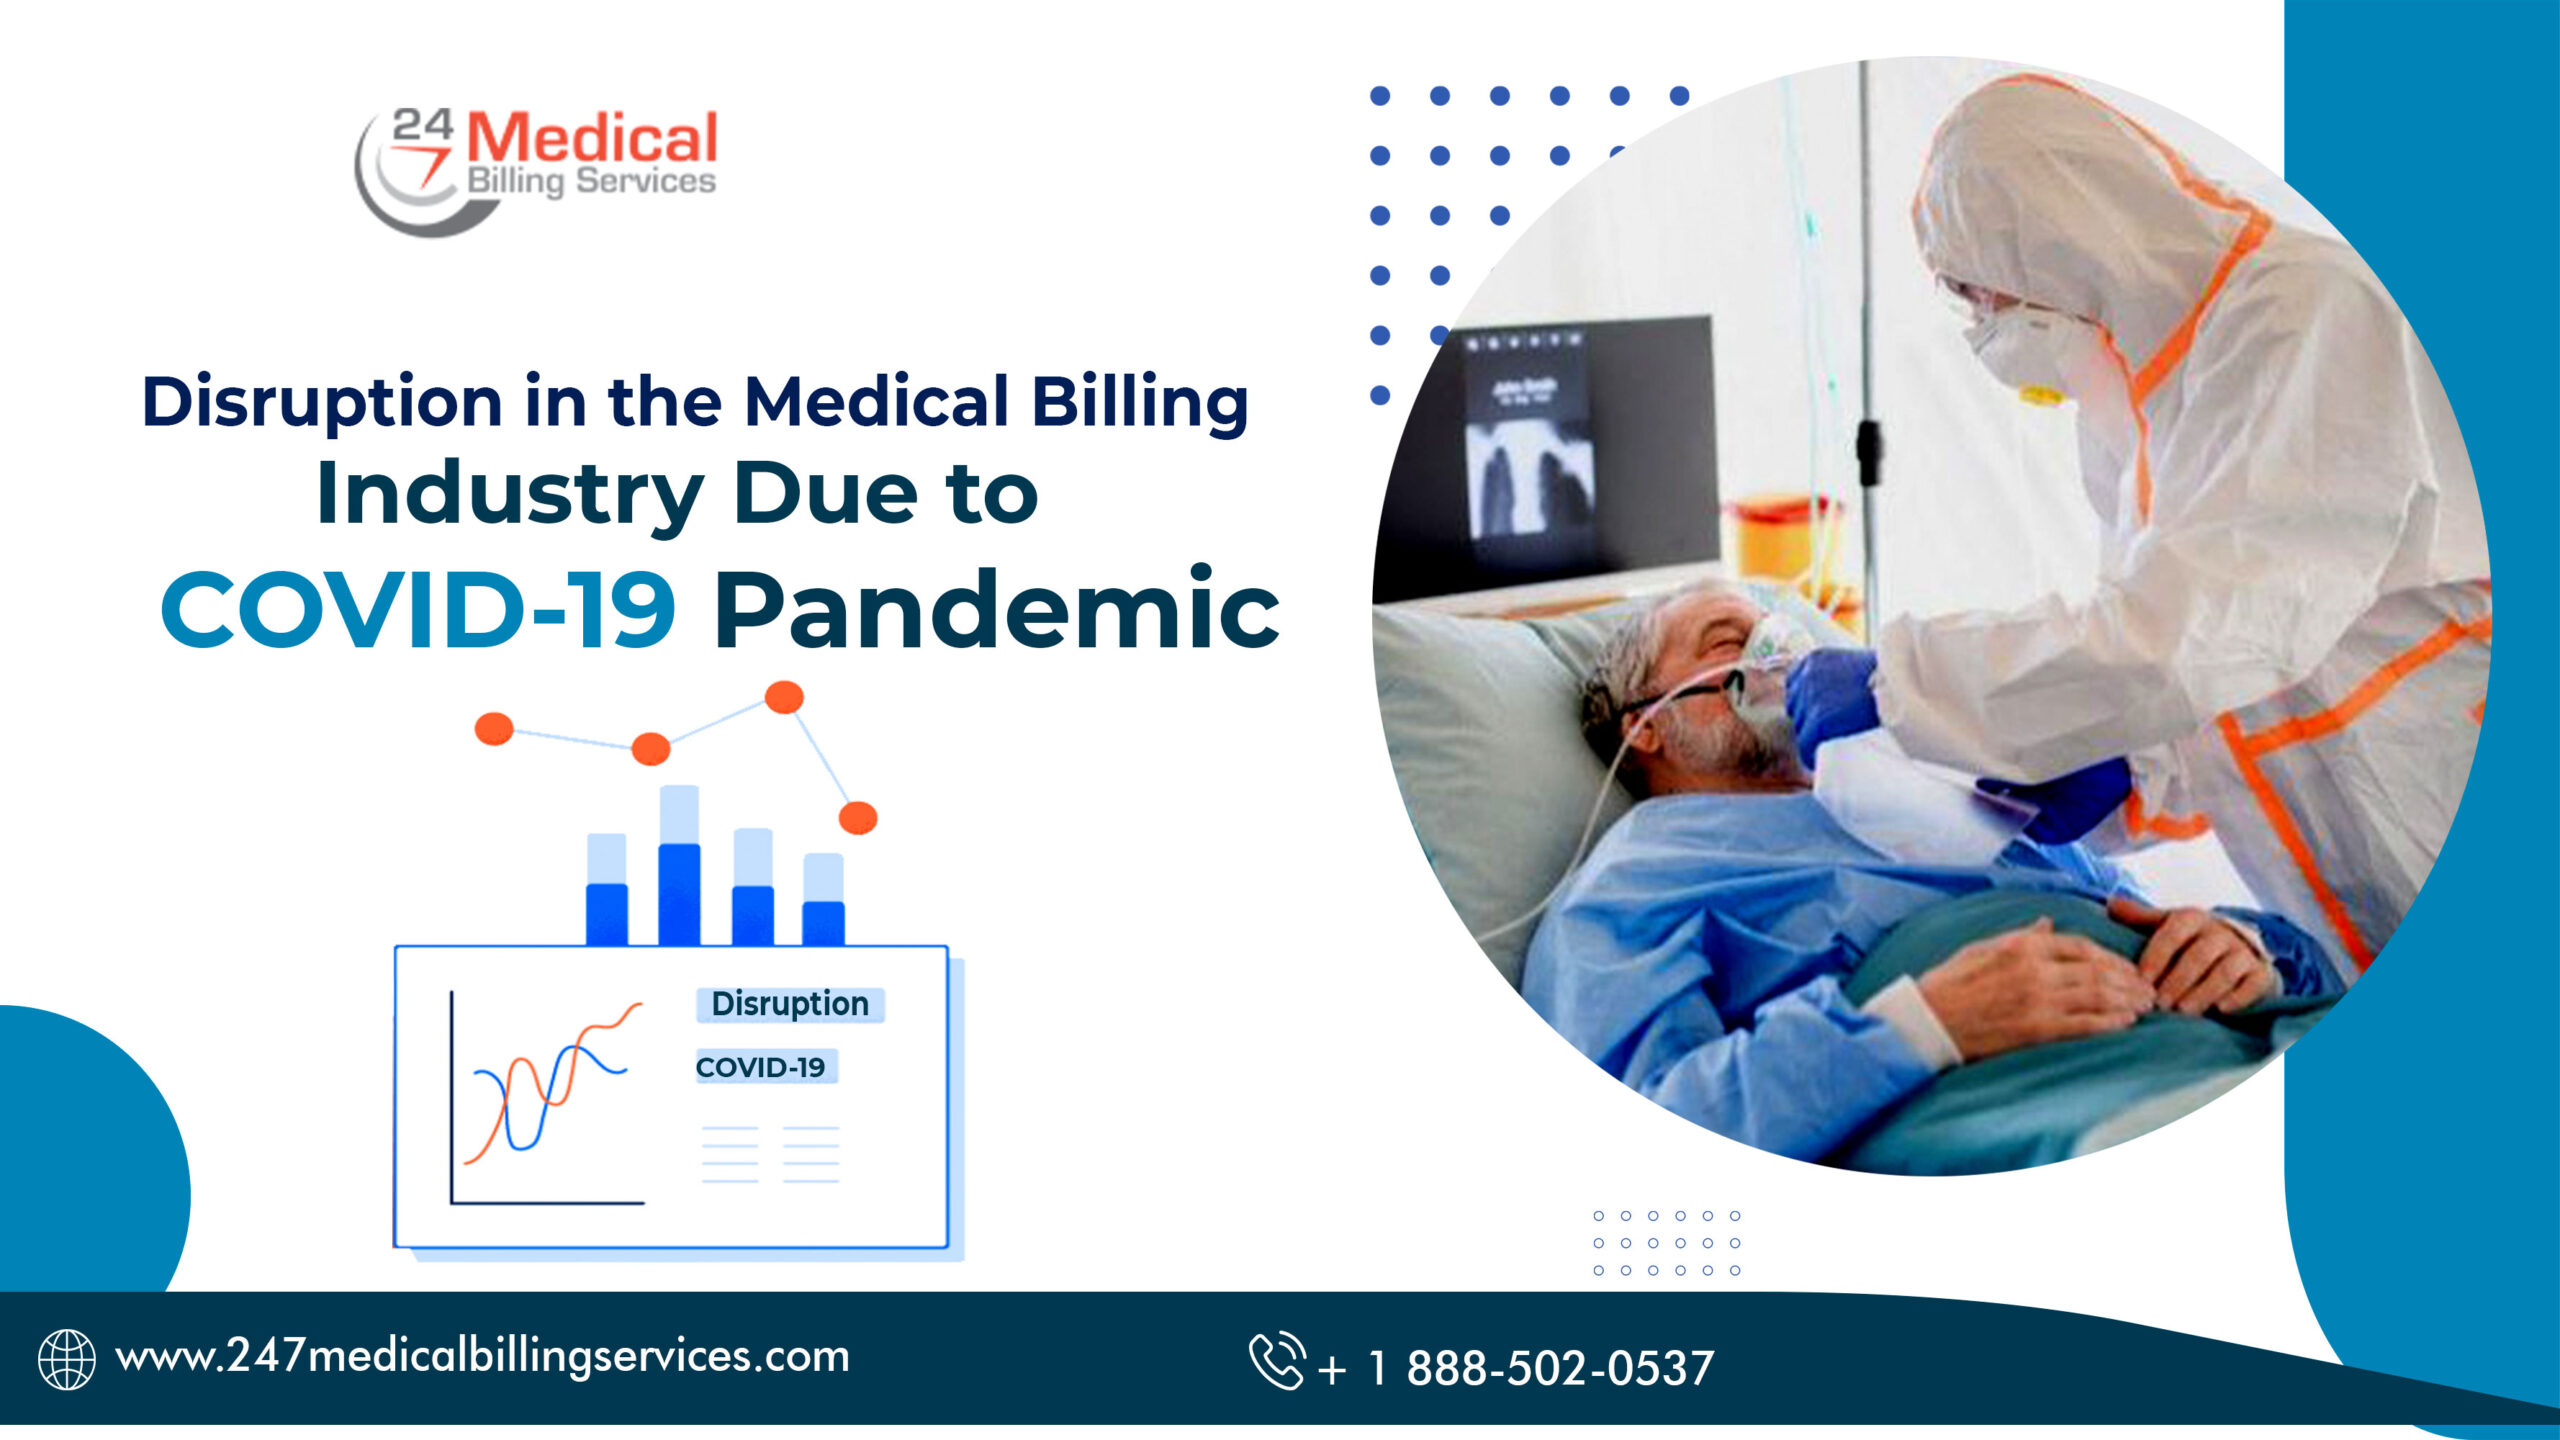 Disruption in the Medical Billing Industry Due to COVID-19 Pandemic